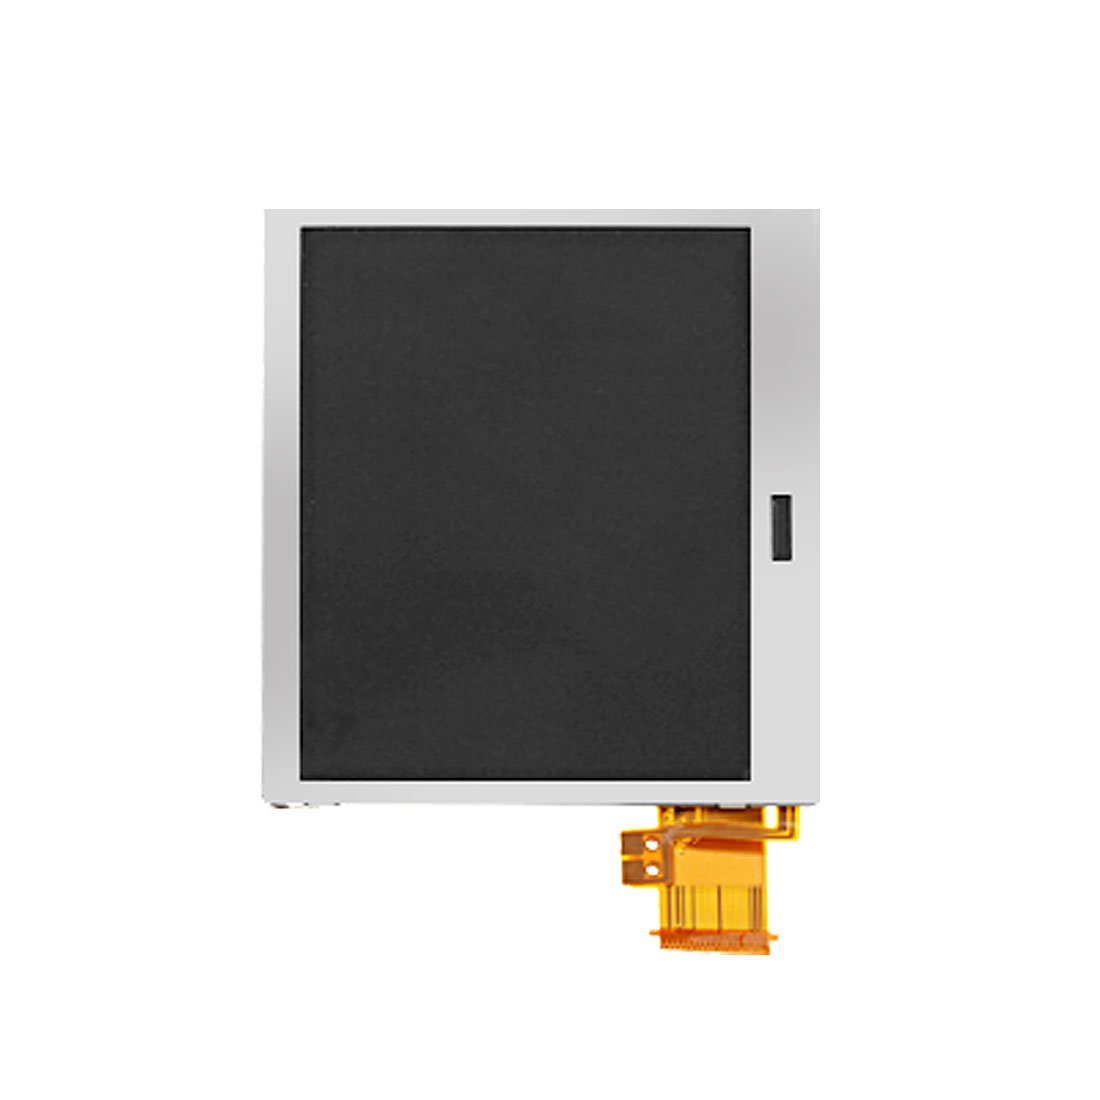 Bottom Lower LCD Screen Display for Nintendo DS Lite NDSL